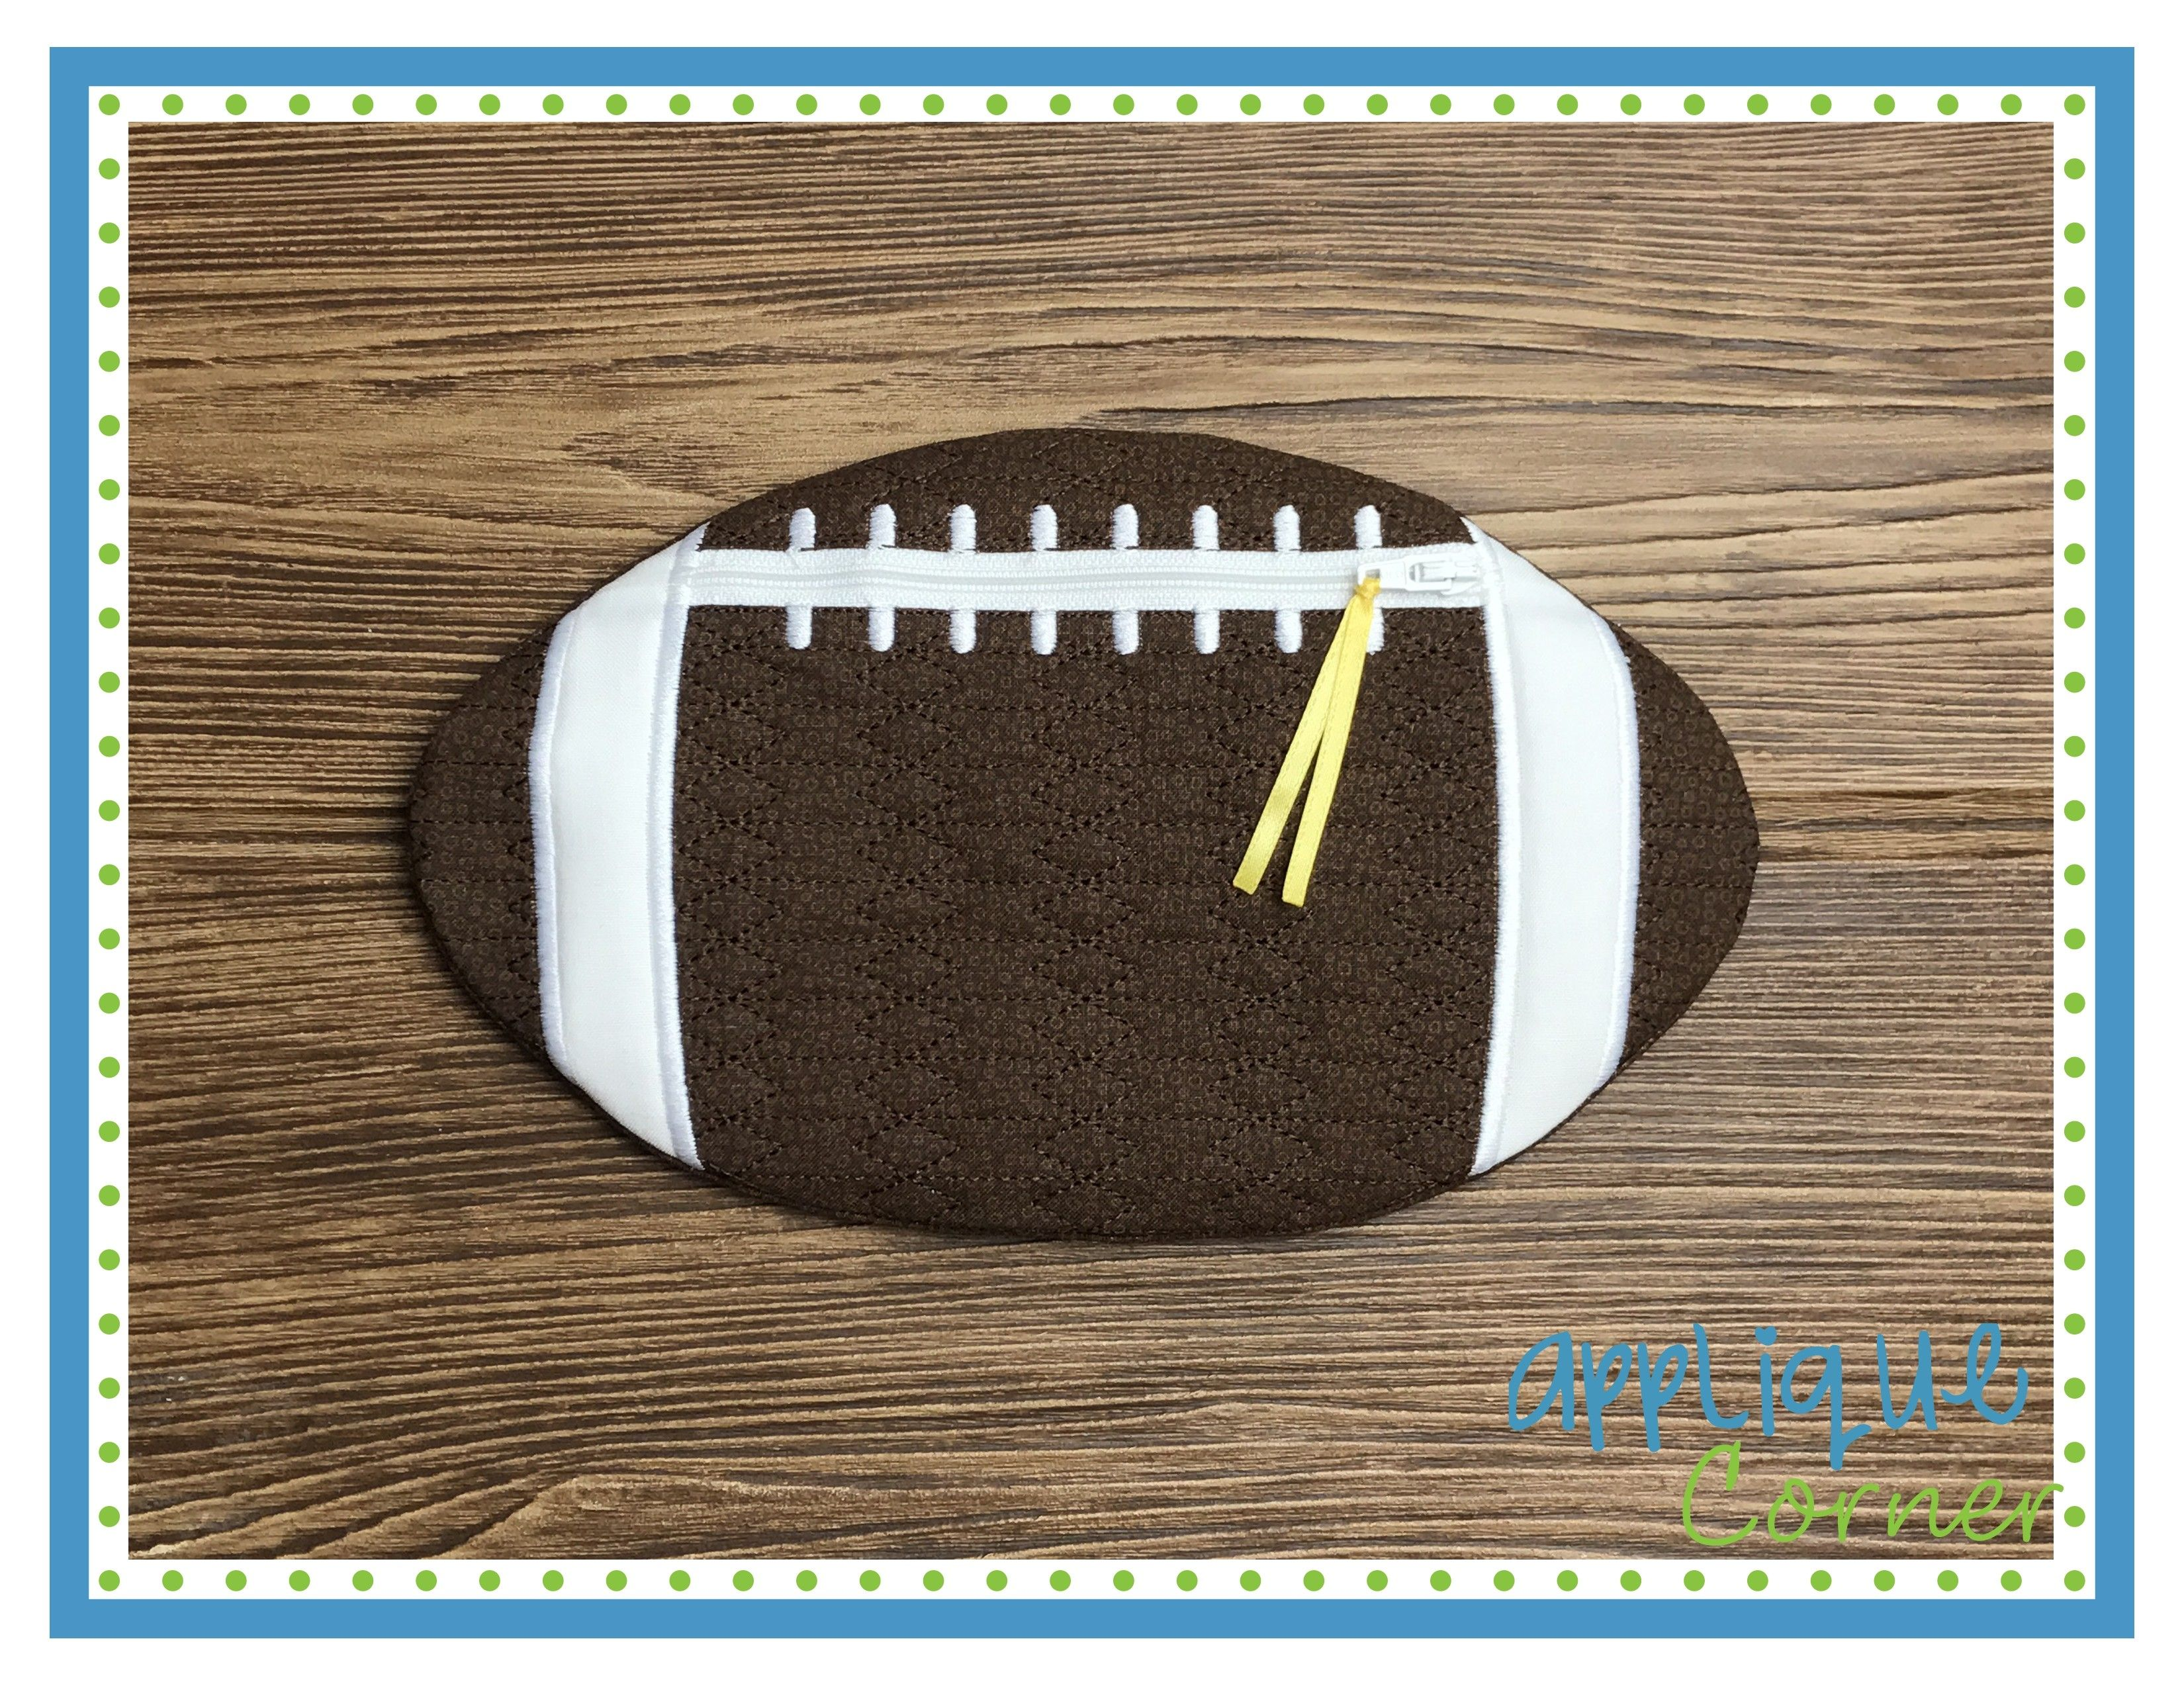 Applique corner in the hoop quilted zipper football bag design